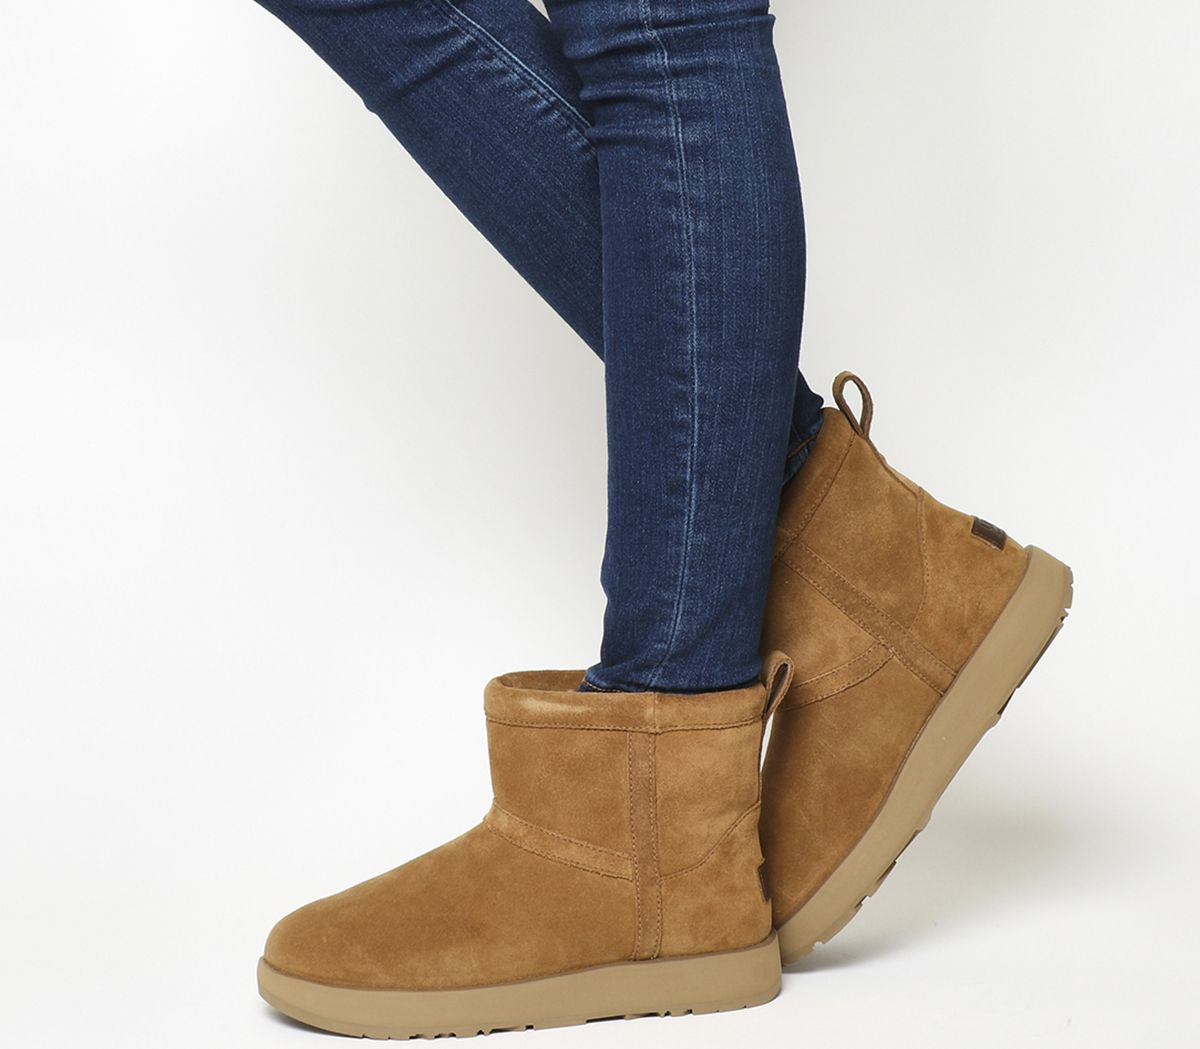 617376aafd UGG Classic Mini Waterproof Boots Chestnut Suede - Ankle Boots